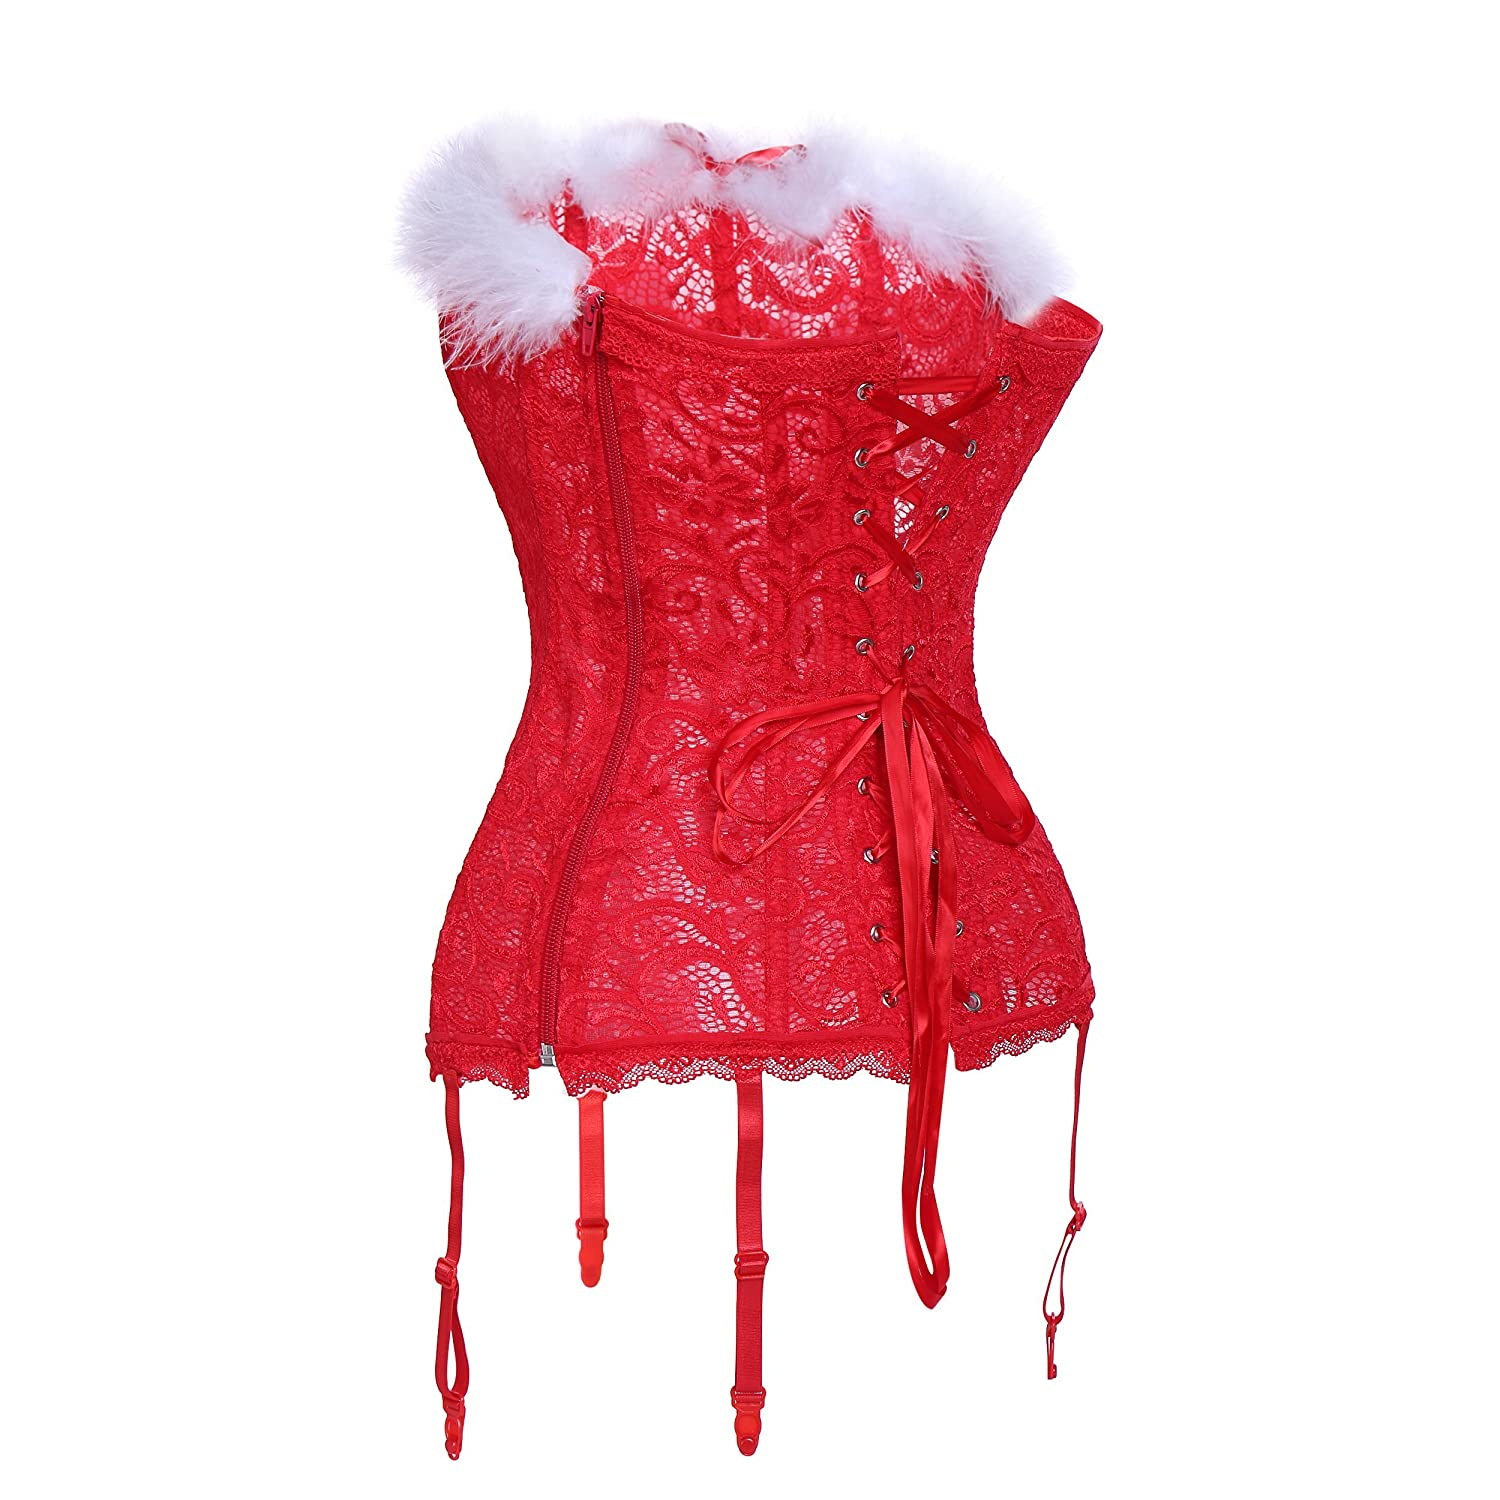 2b17e003f6a MISS MOLY Women s Lace Christmas Sexy Santa Girls Velvet Bustier Corset  Costume Outfit (w Hat